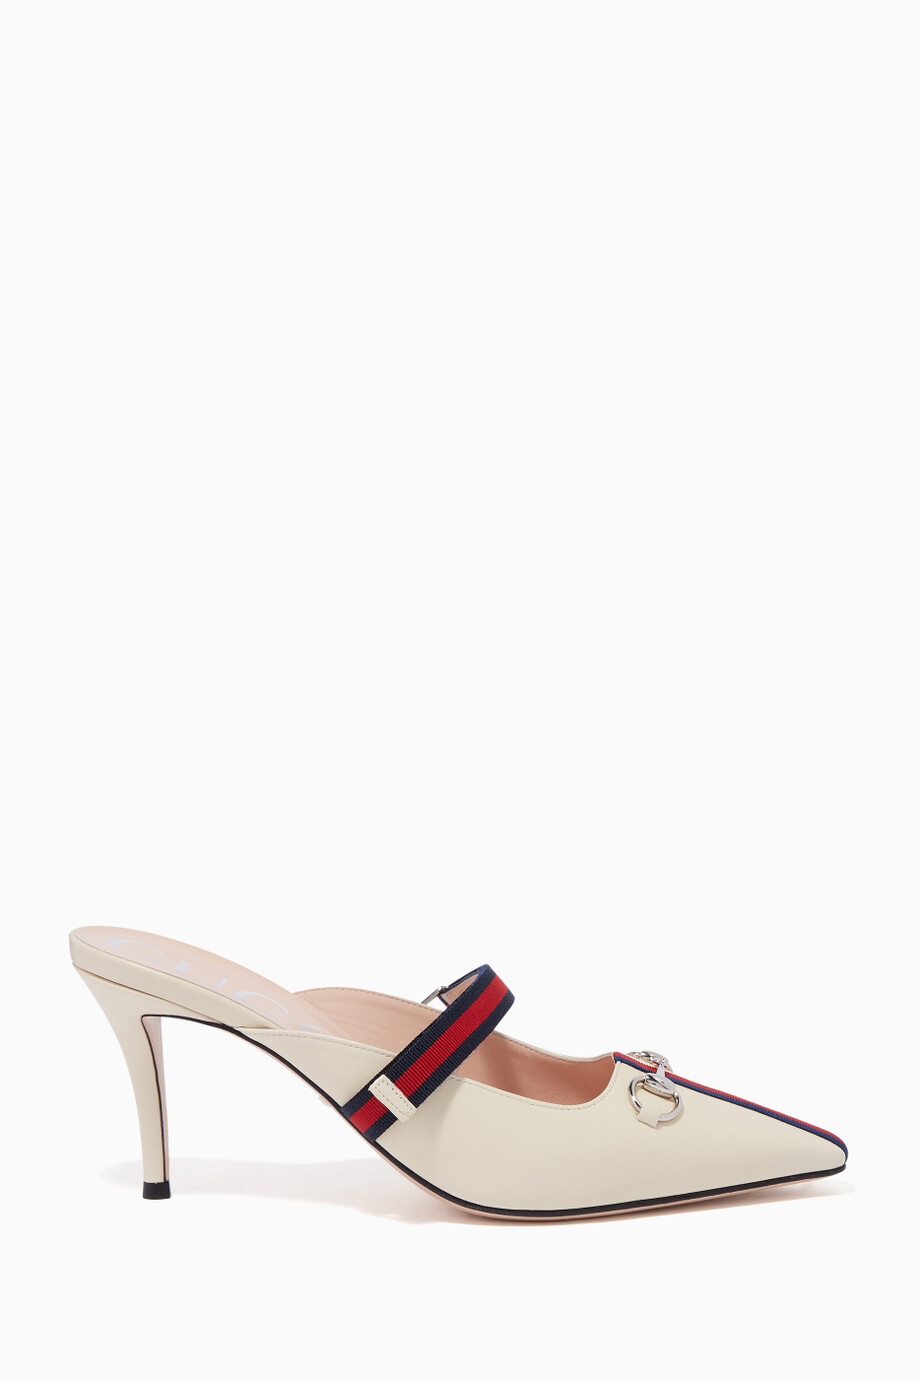 543408fc4c24 Shop Gucci White Off-White Emma Leather Mules for Women